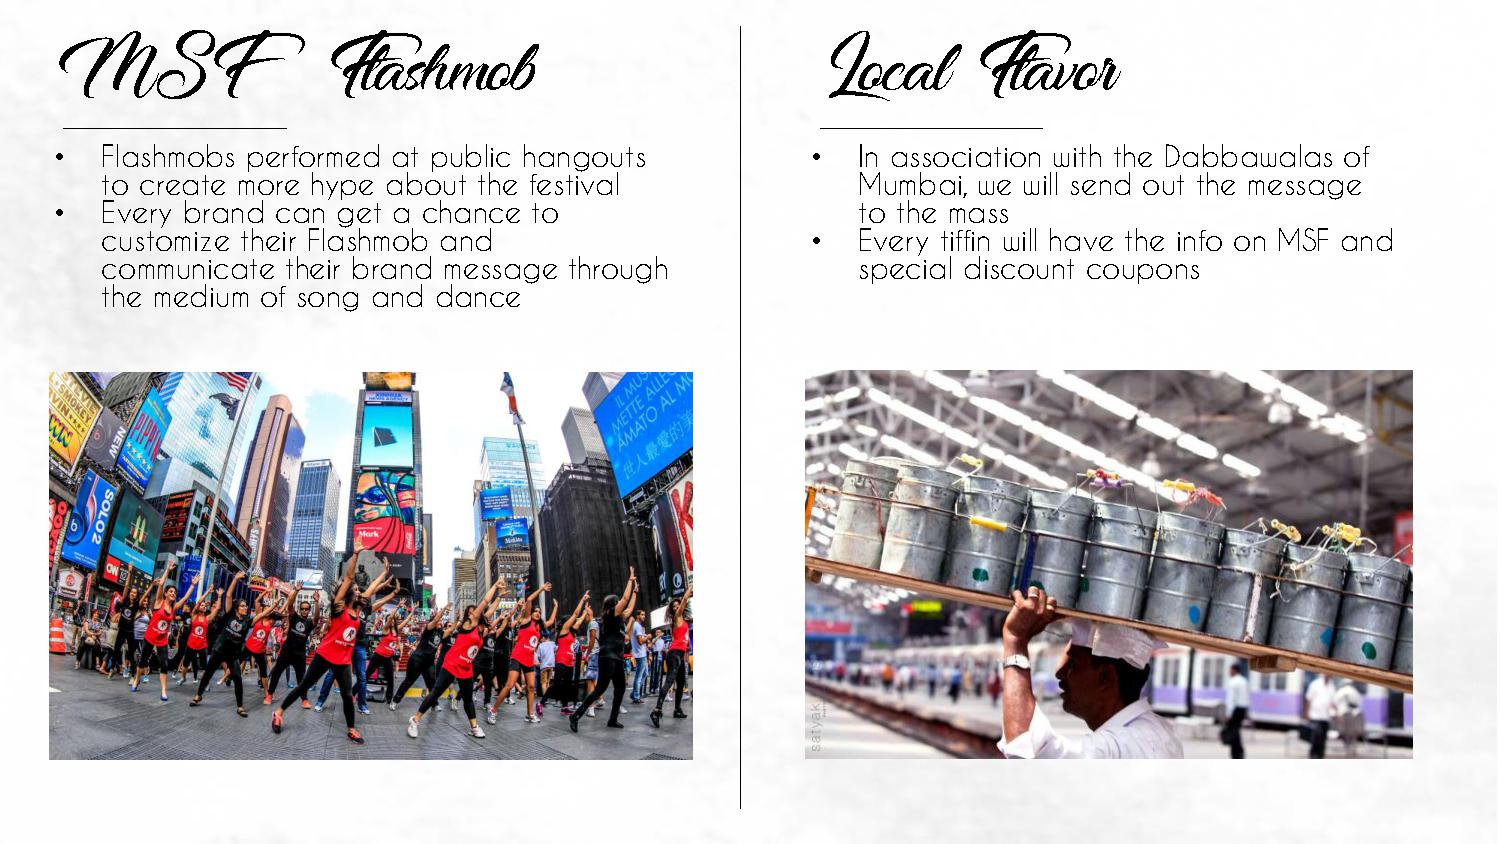 MSF Flashmob Local Flavor • Flashmobs performed at public hangouts to create more hype about the festival • In association with the Dabbawalas of Mumbai, we will send out the message to the mass • Every brand can get a chance to customize their Flashmob and communicate their brand message through the medium of song and dance • Every tiffin will have the info on MSF and special discount coupons